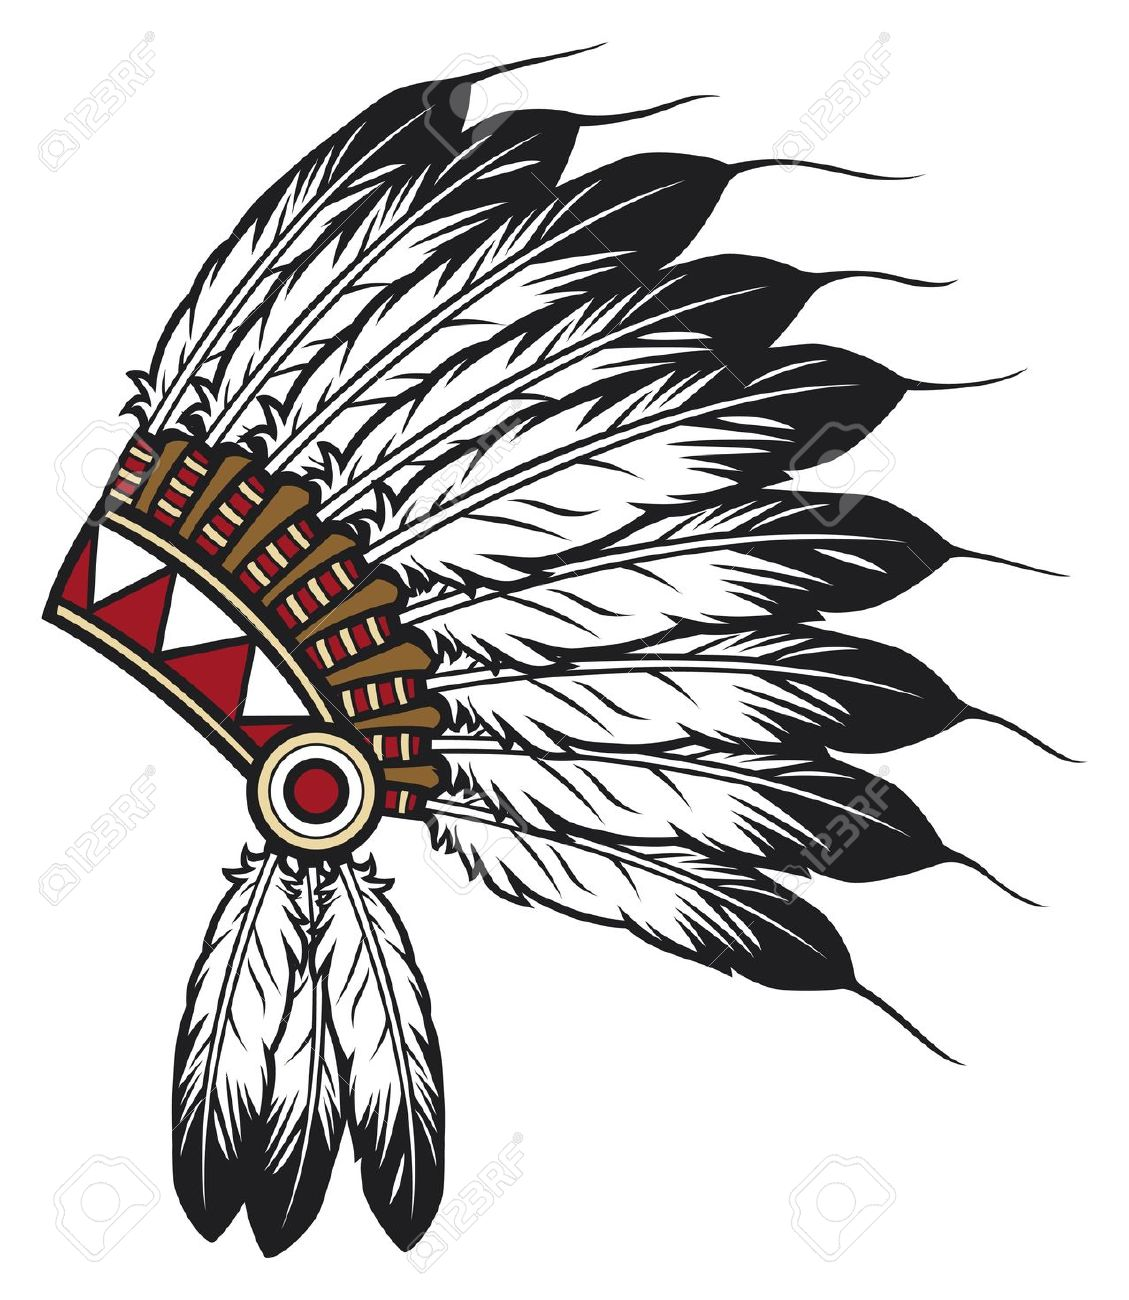 Cherokee indian clipart.